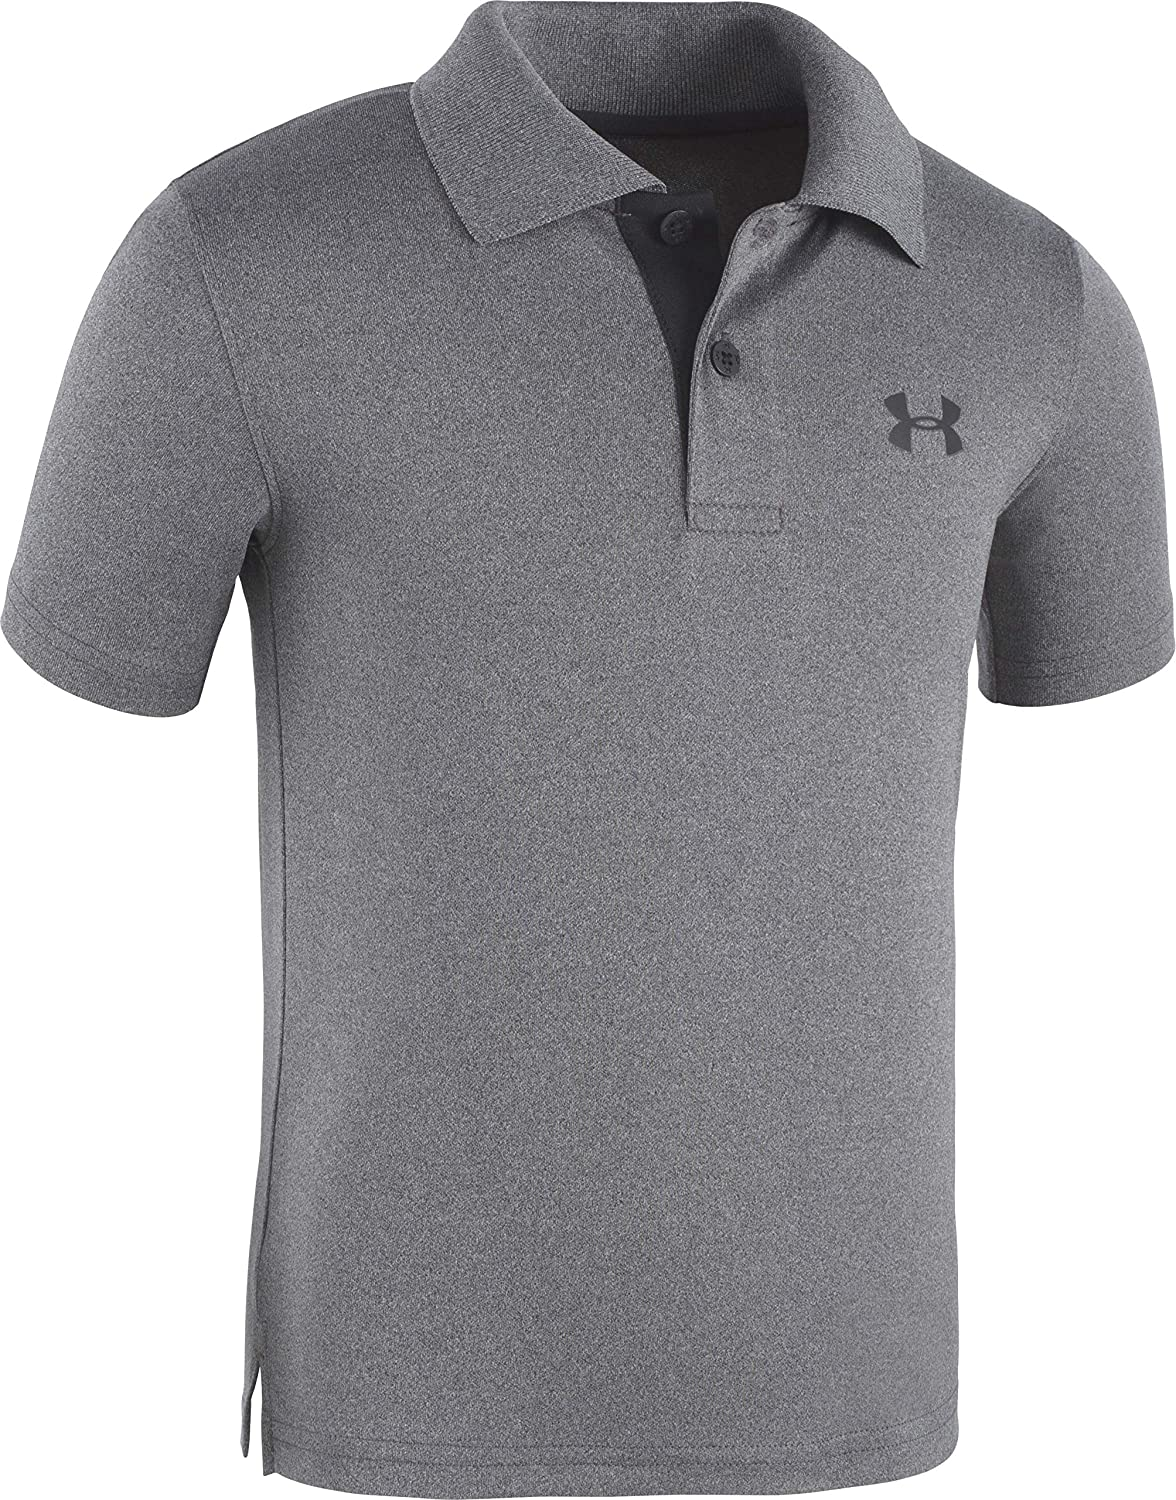 Under Armour Baby Boys' Ua Logo Short Sleeve Polo: Clothing